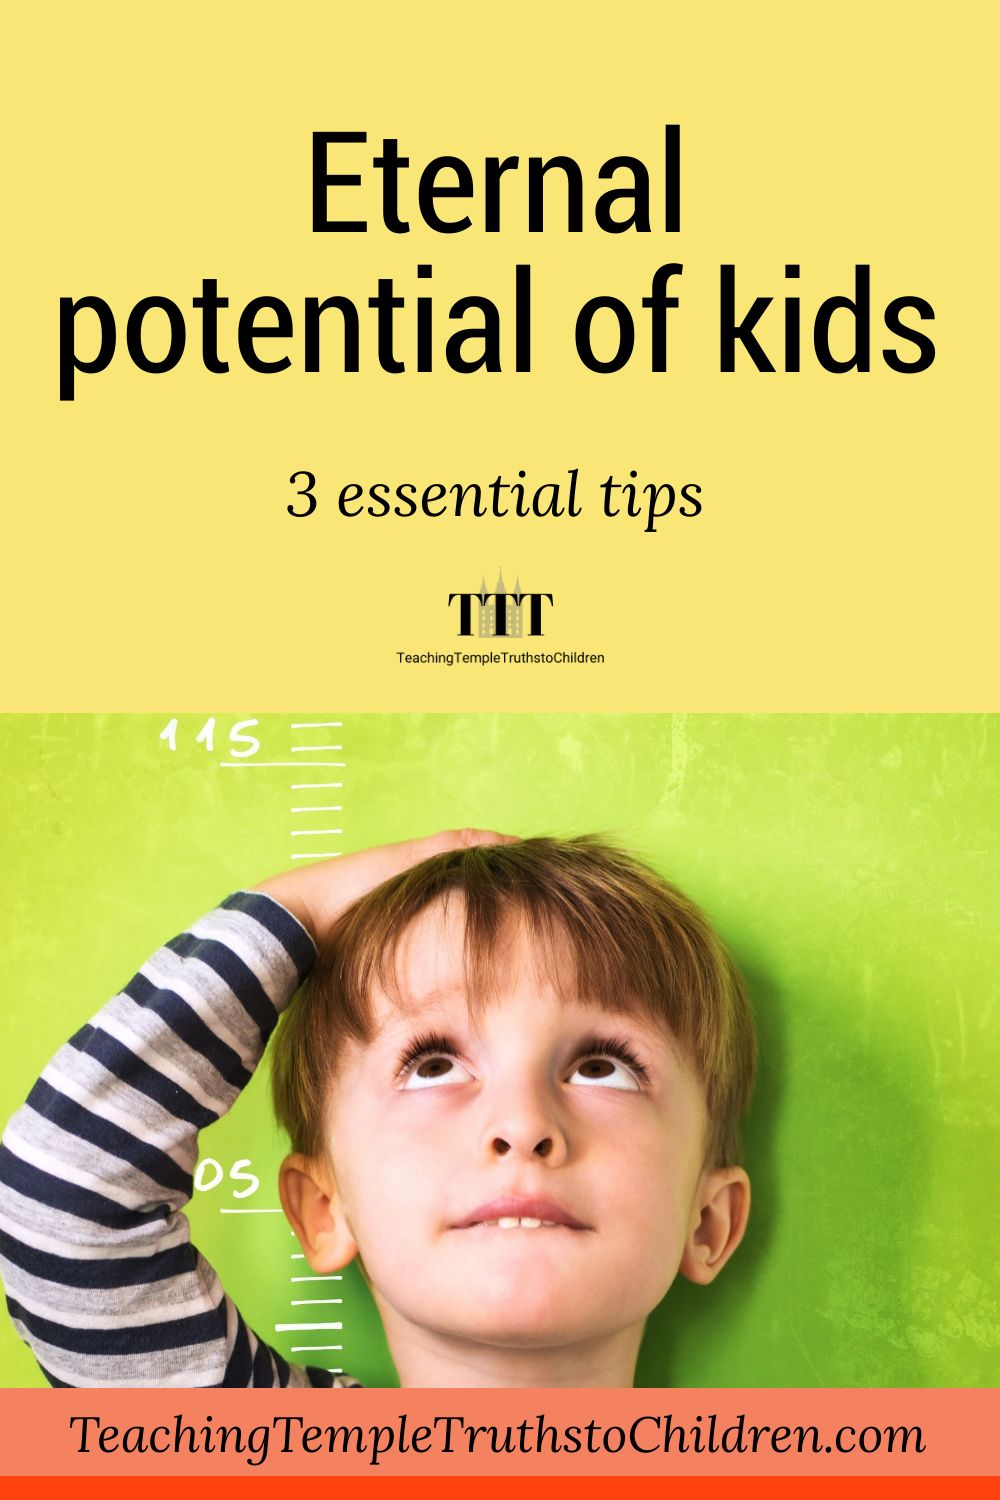 Eternal potential of kids:3 essential tips